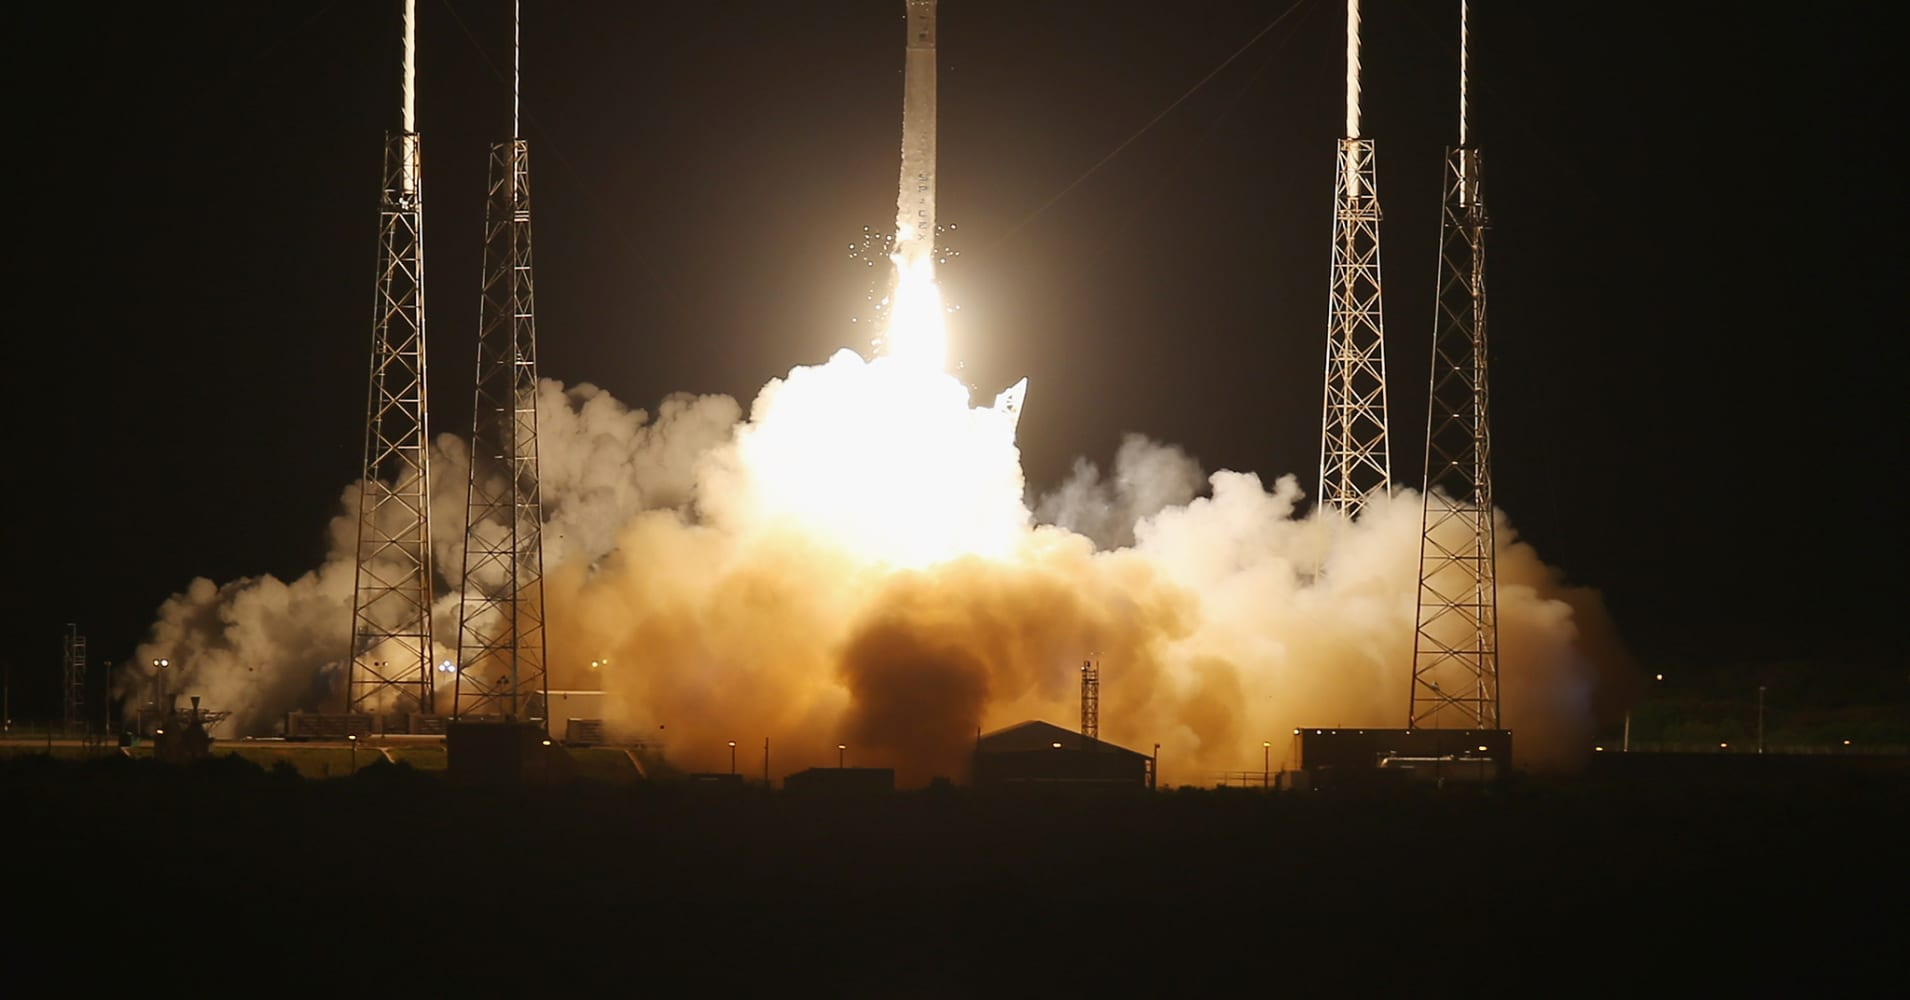 spacex dragon launch - 620×423